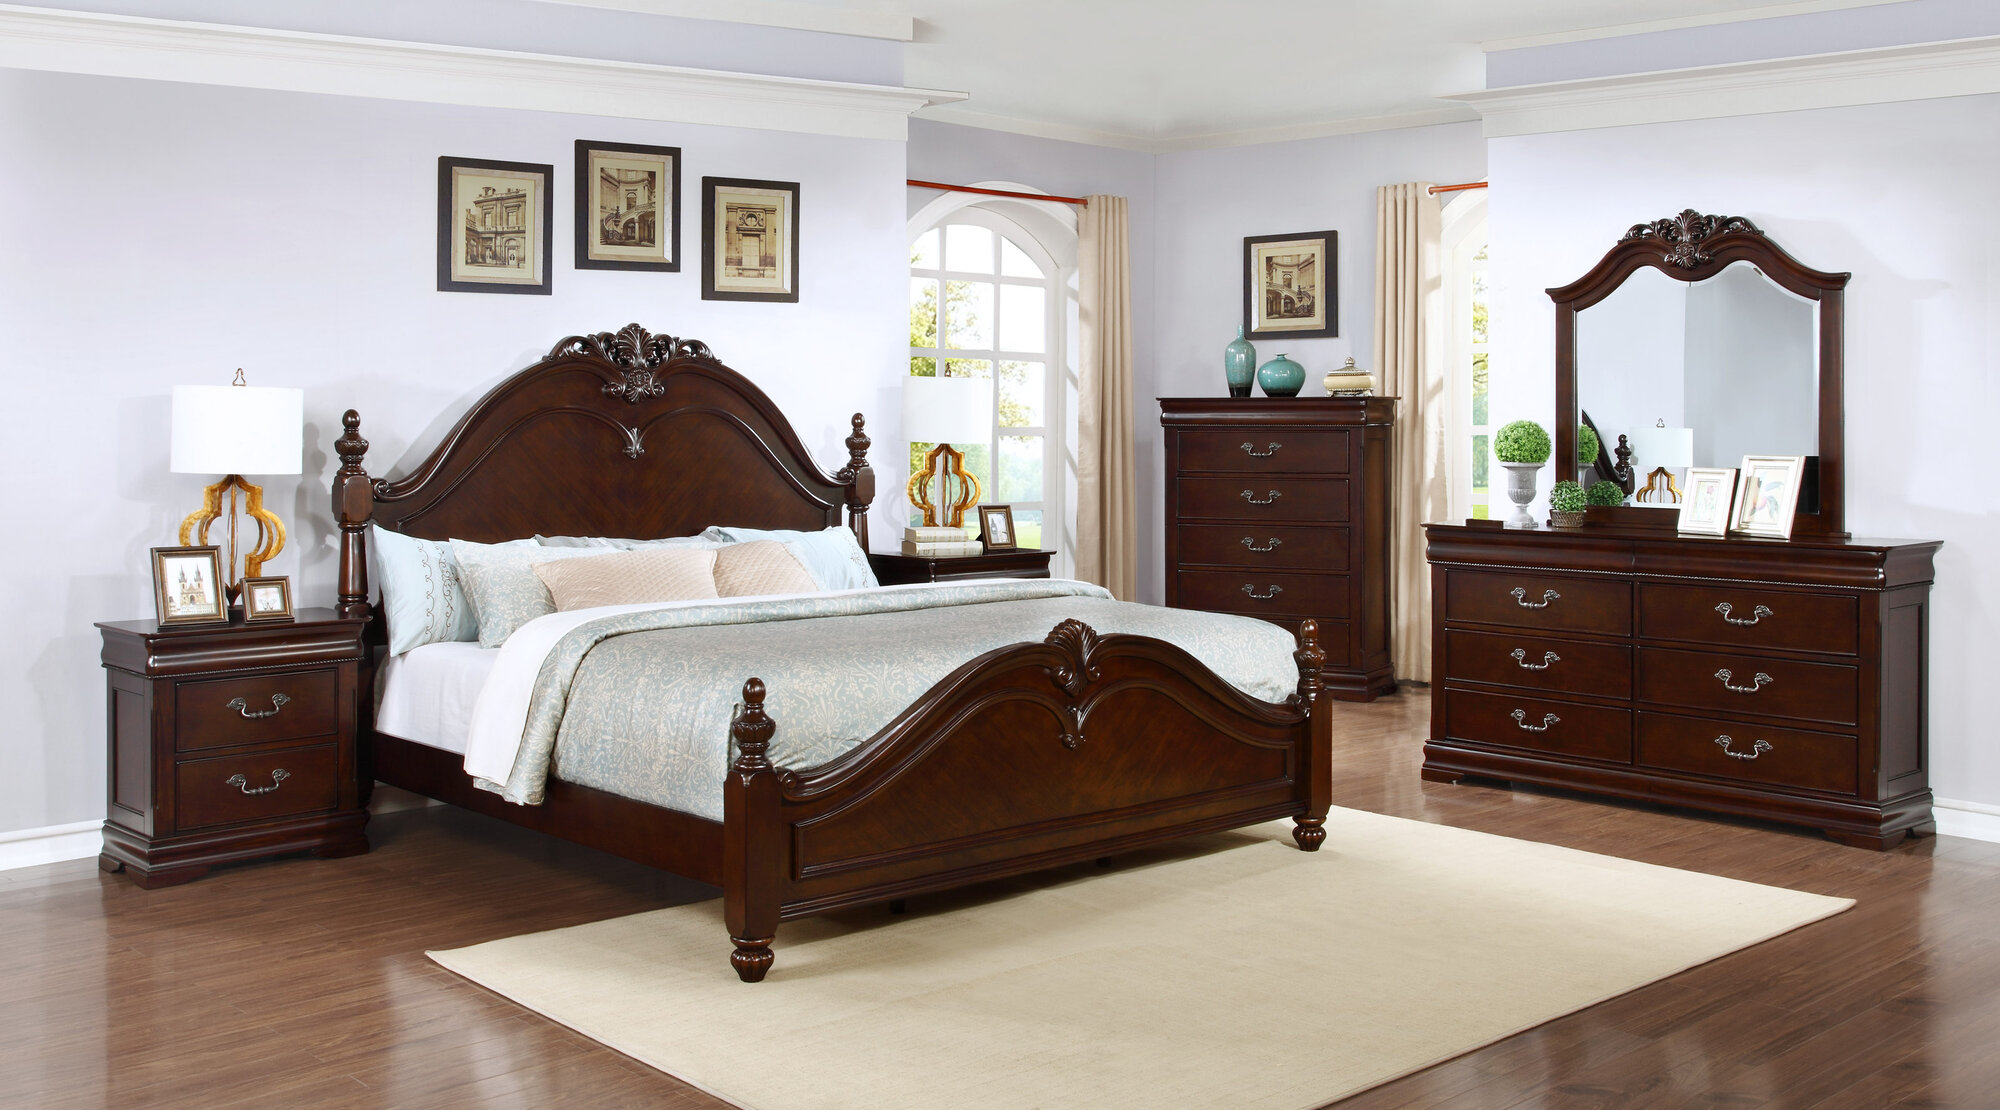 Best Bedroom Set 28 Images Ashley Furniture Bedroom Sets On Girls Best Deals Image Arcadia